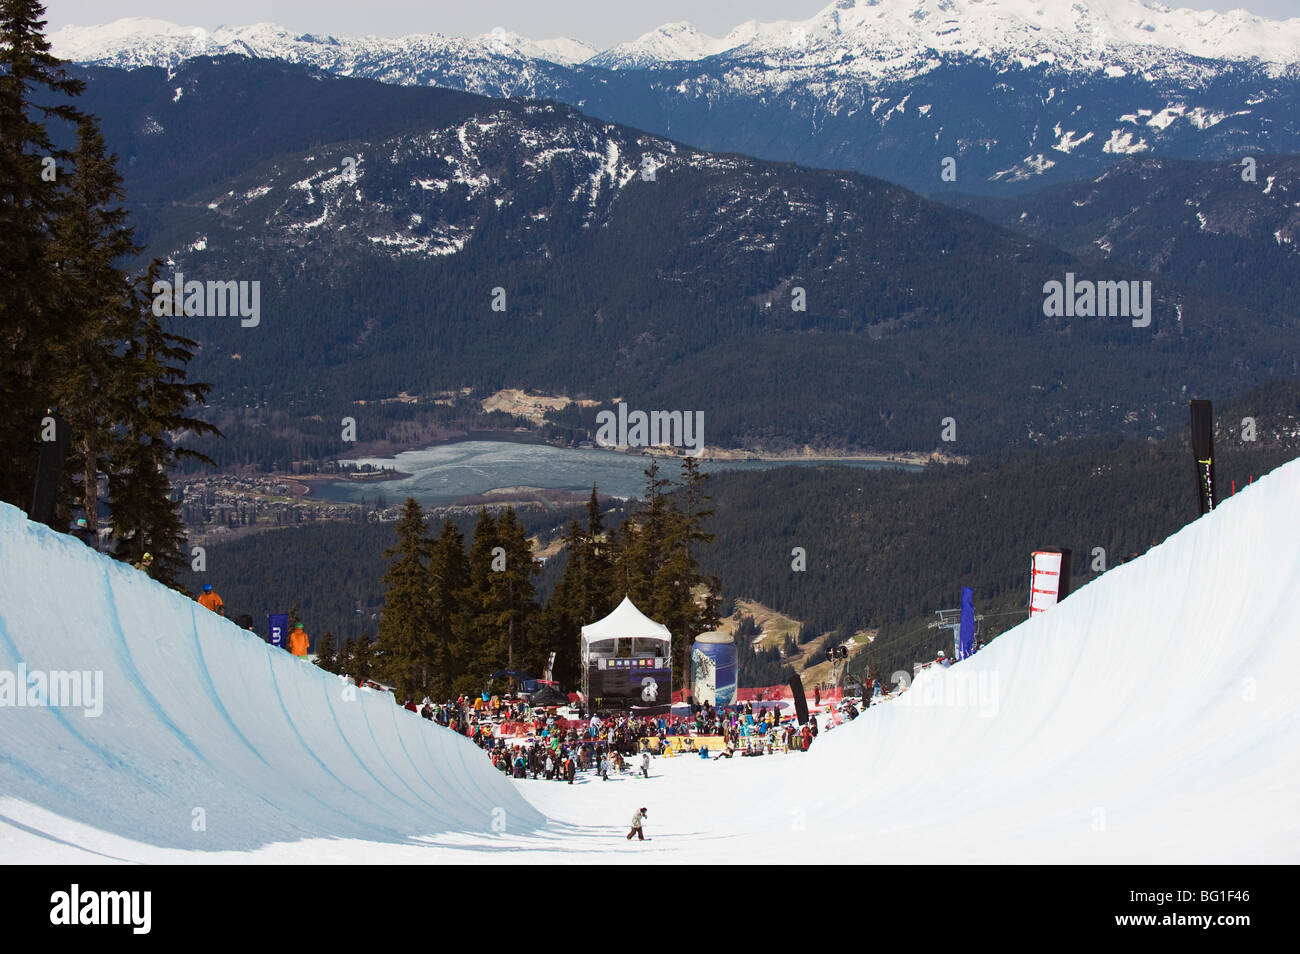 Telus Festival half pipe competition, Whistler mountain resort, venue of 2010 Winter Olympic Games, British Columbia, - Stock Image